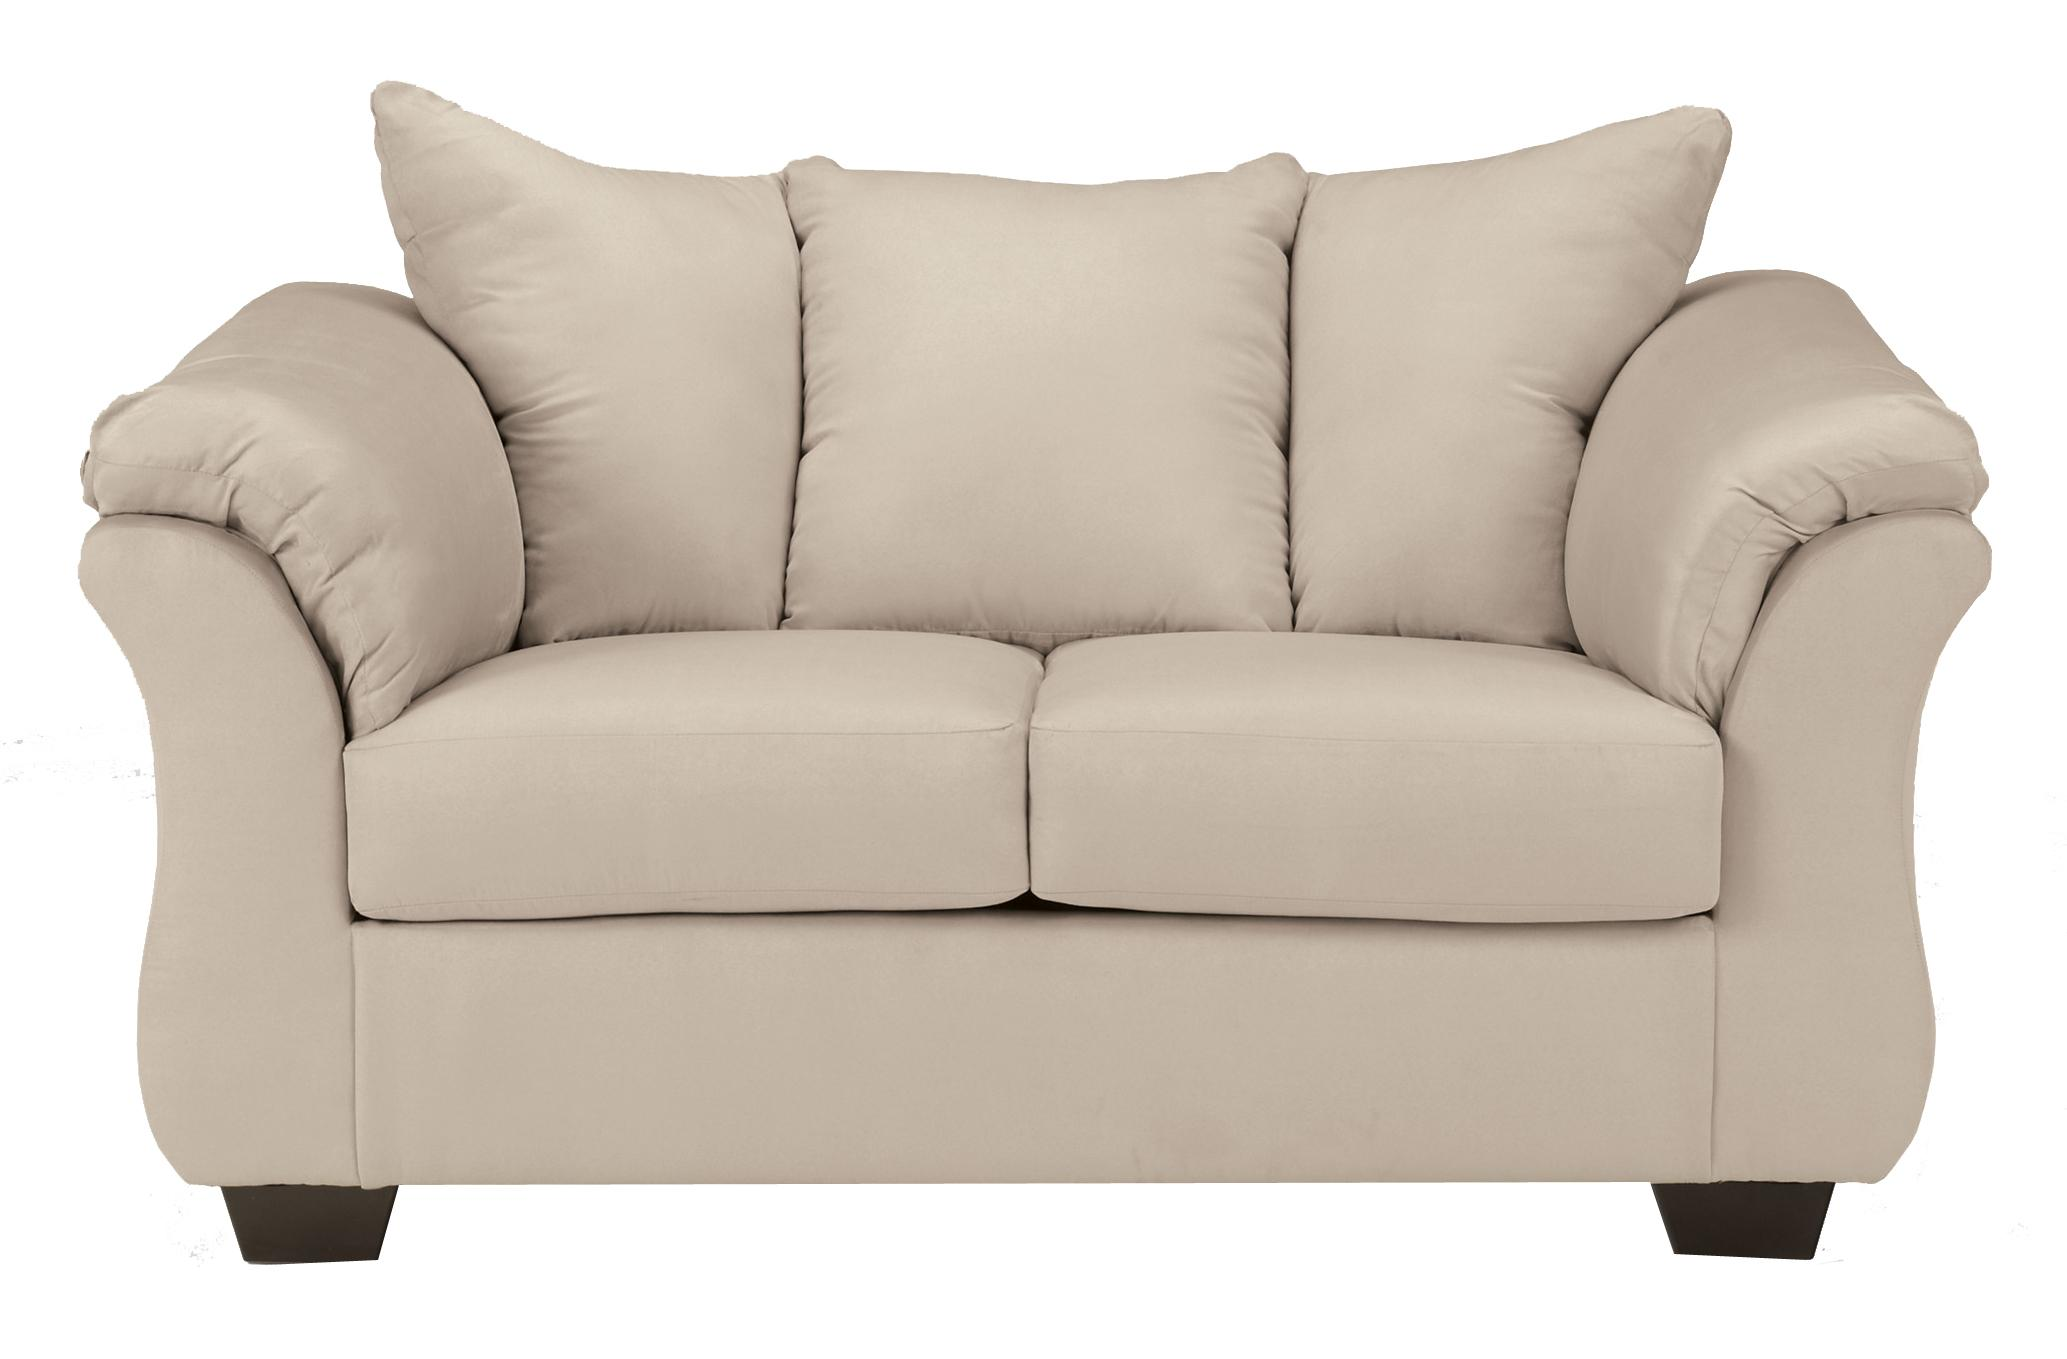 Darcy - Stone Stationary Loveseat by Ashley (Signature Design) at Johnny Janosik